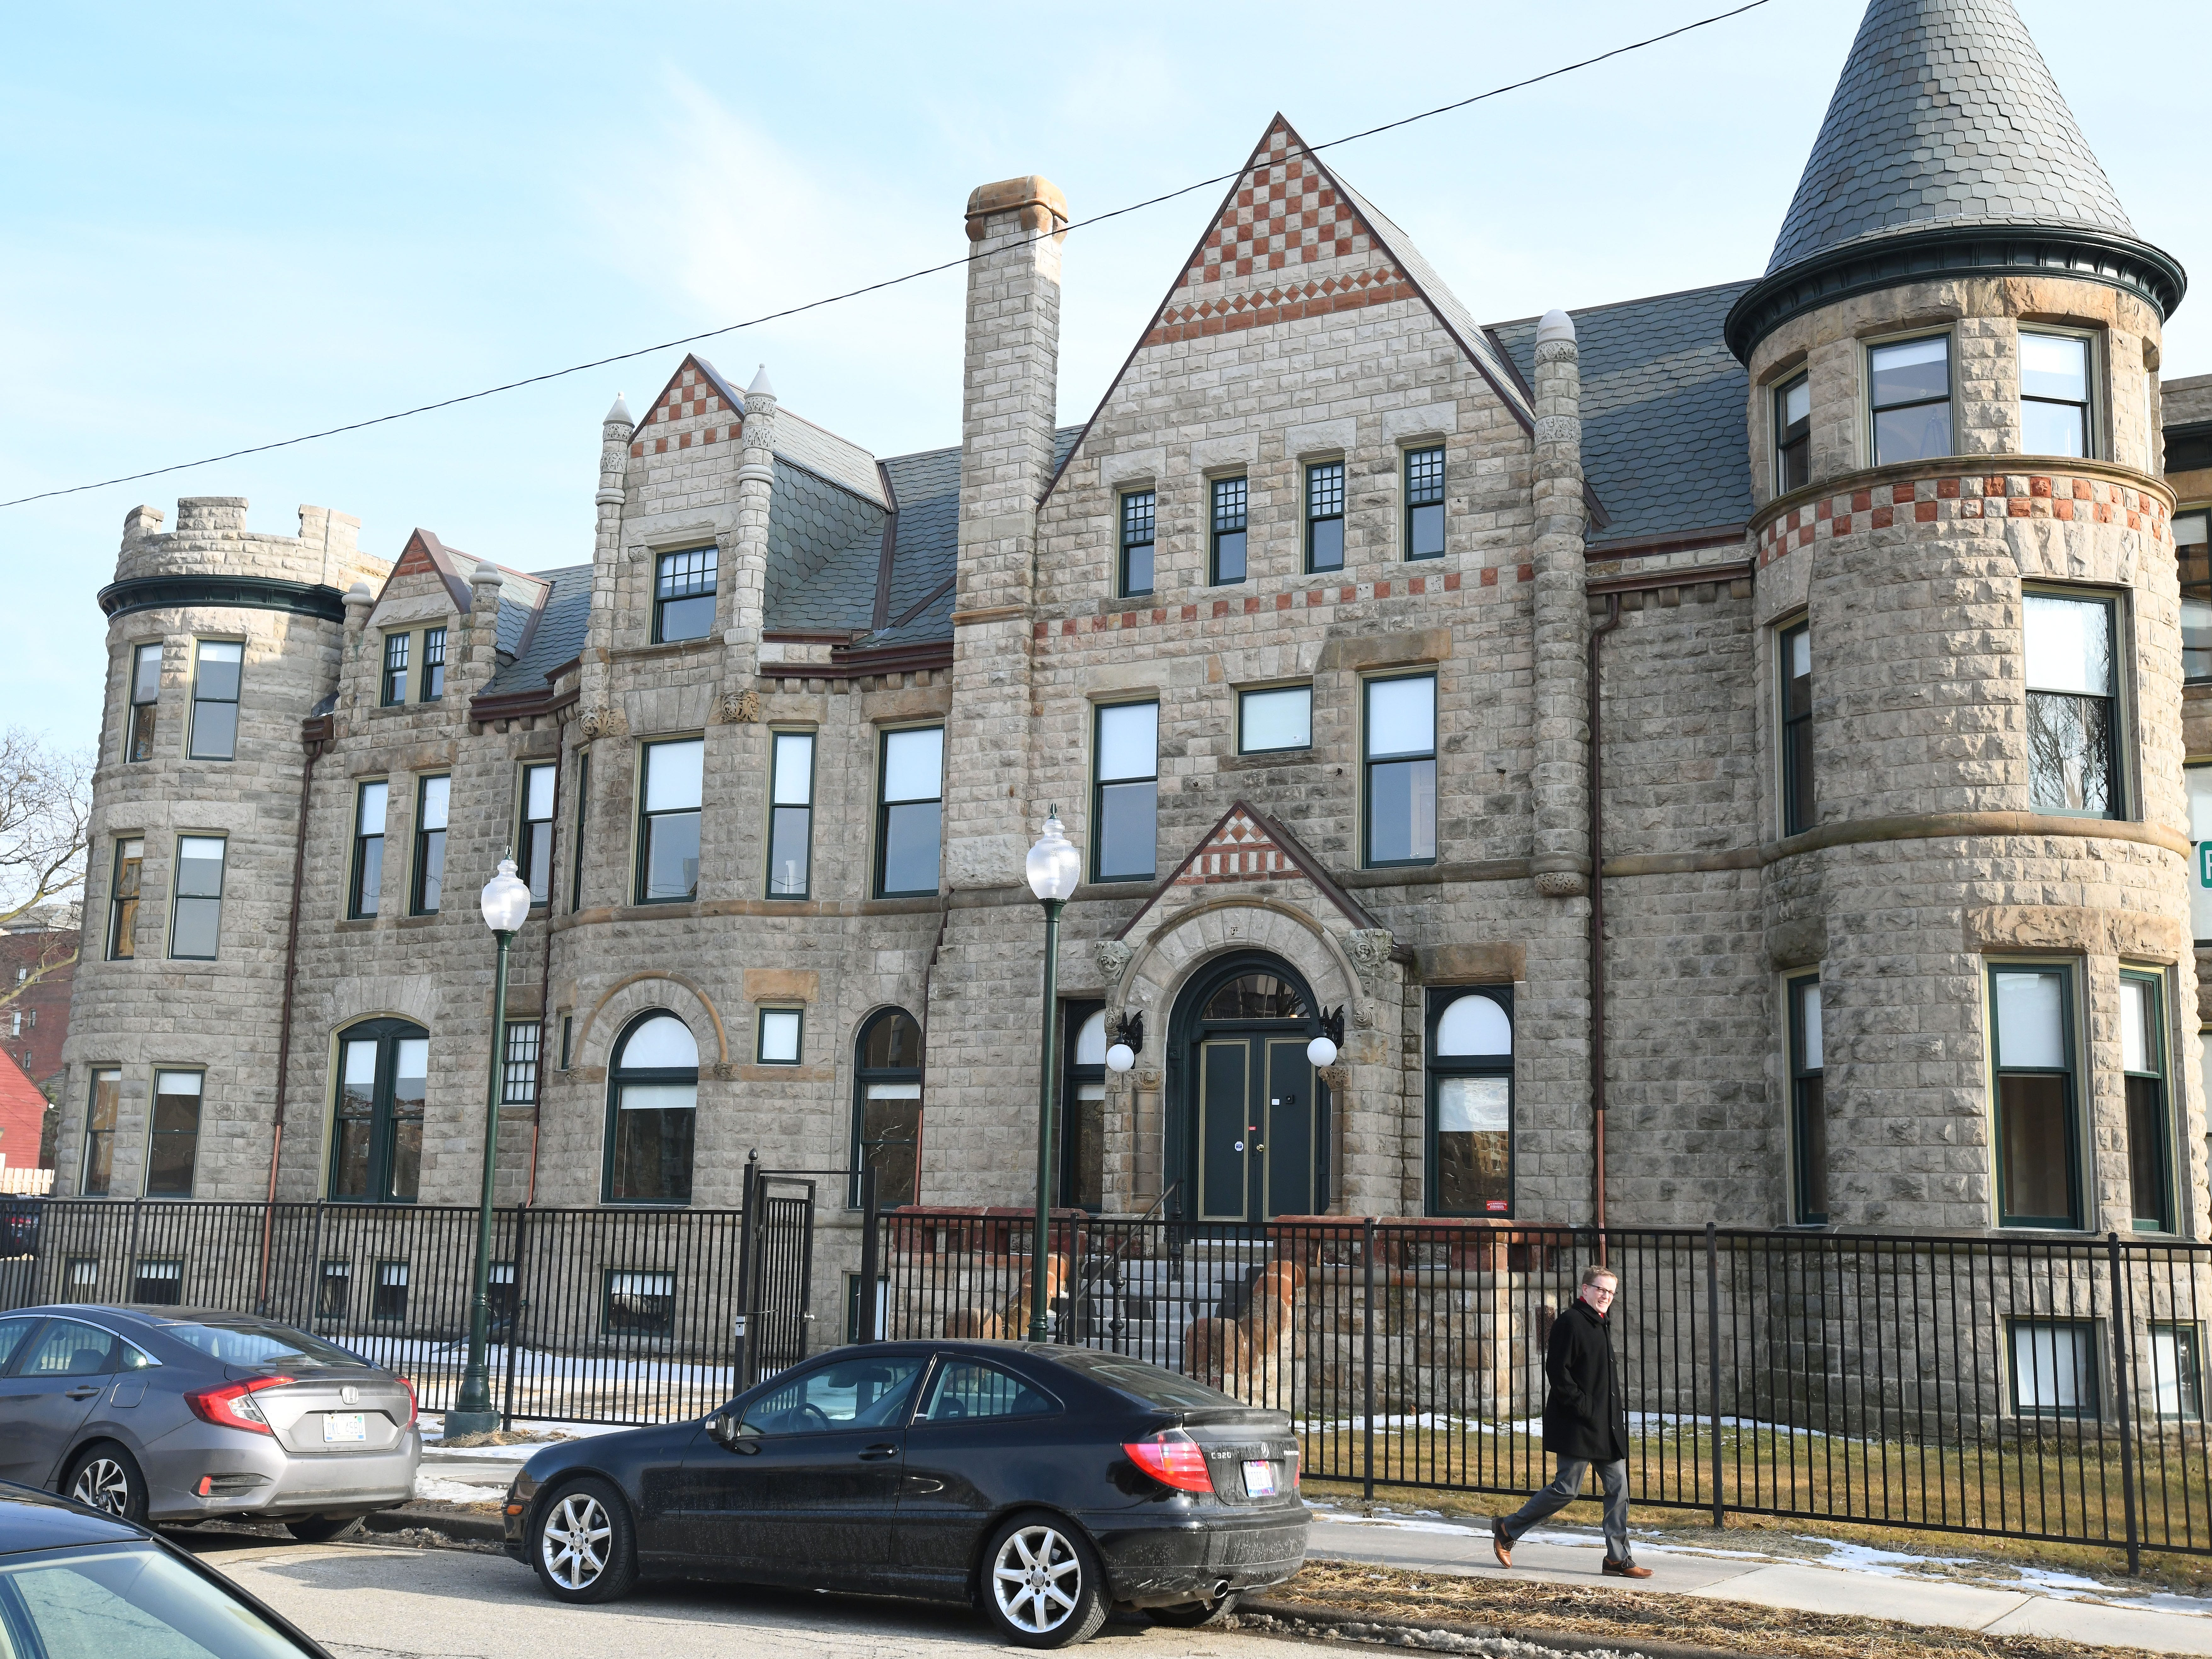 Guests tour historic Scott Mansion which has been renovated into market-rate rental apartments in the Cass Corridor  in Detroit, Michigan on February 21, 2019. The $6 million project leverages federal and state historic tax credits and as well as a mortgage from Capital Impact Partners.